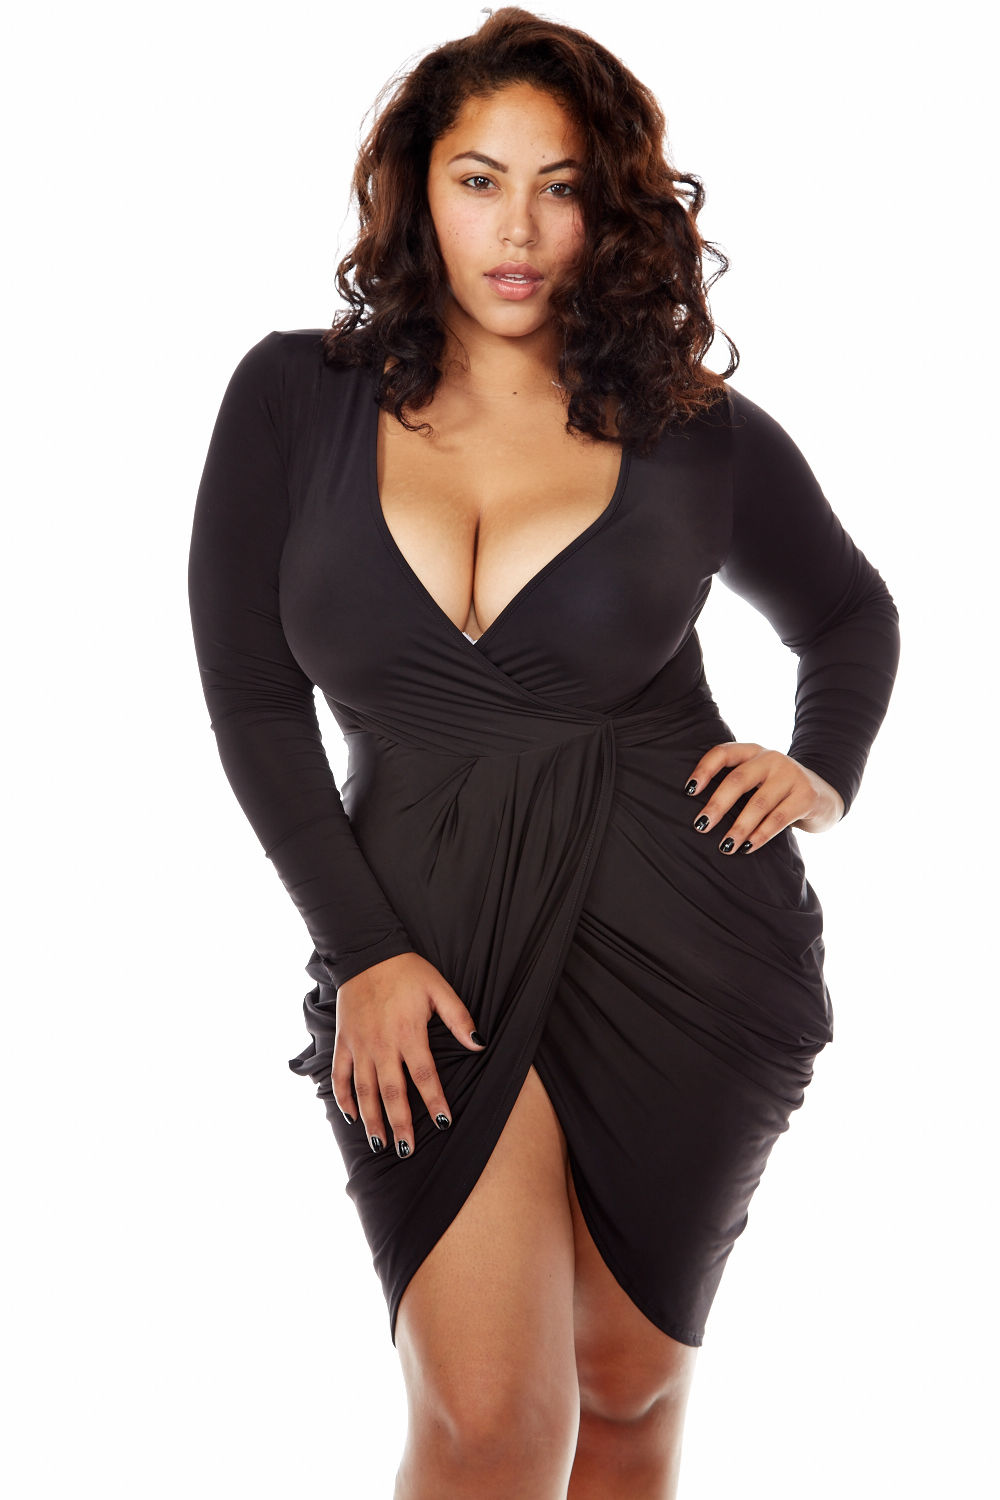 WOMENS PLUS SEXY CLUBWEAR CUT OUT HOT SHORT SLEEVE FASHION DRESS GMD7181-XL-Black